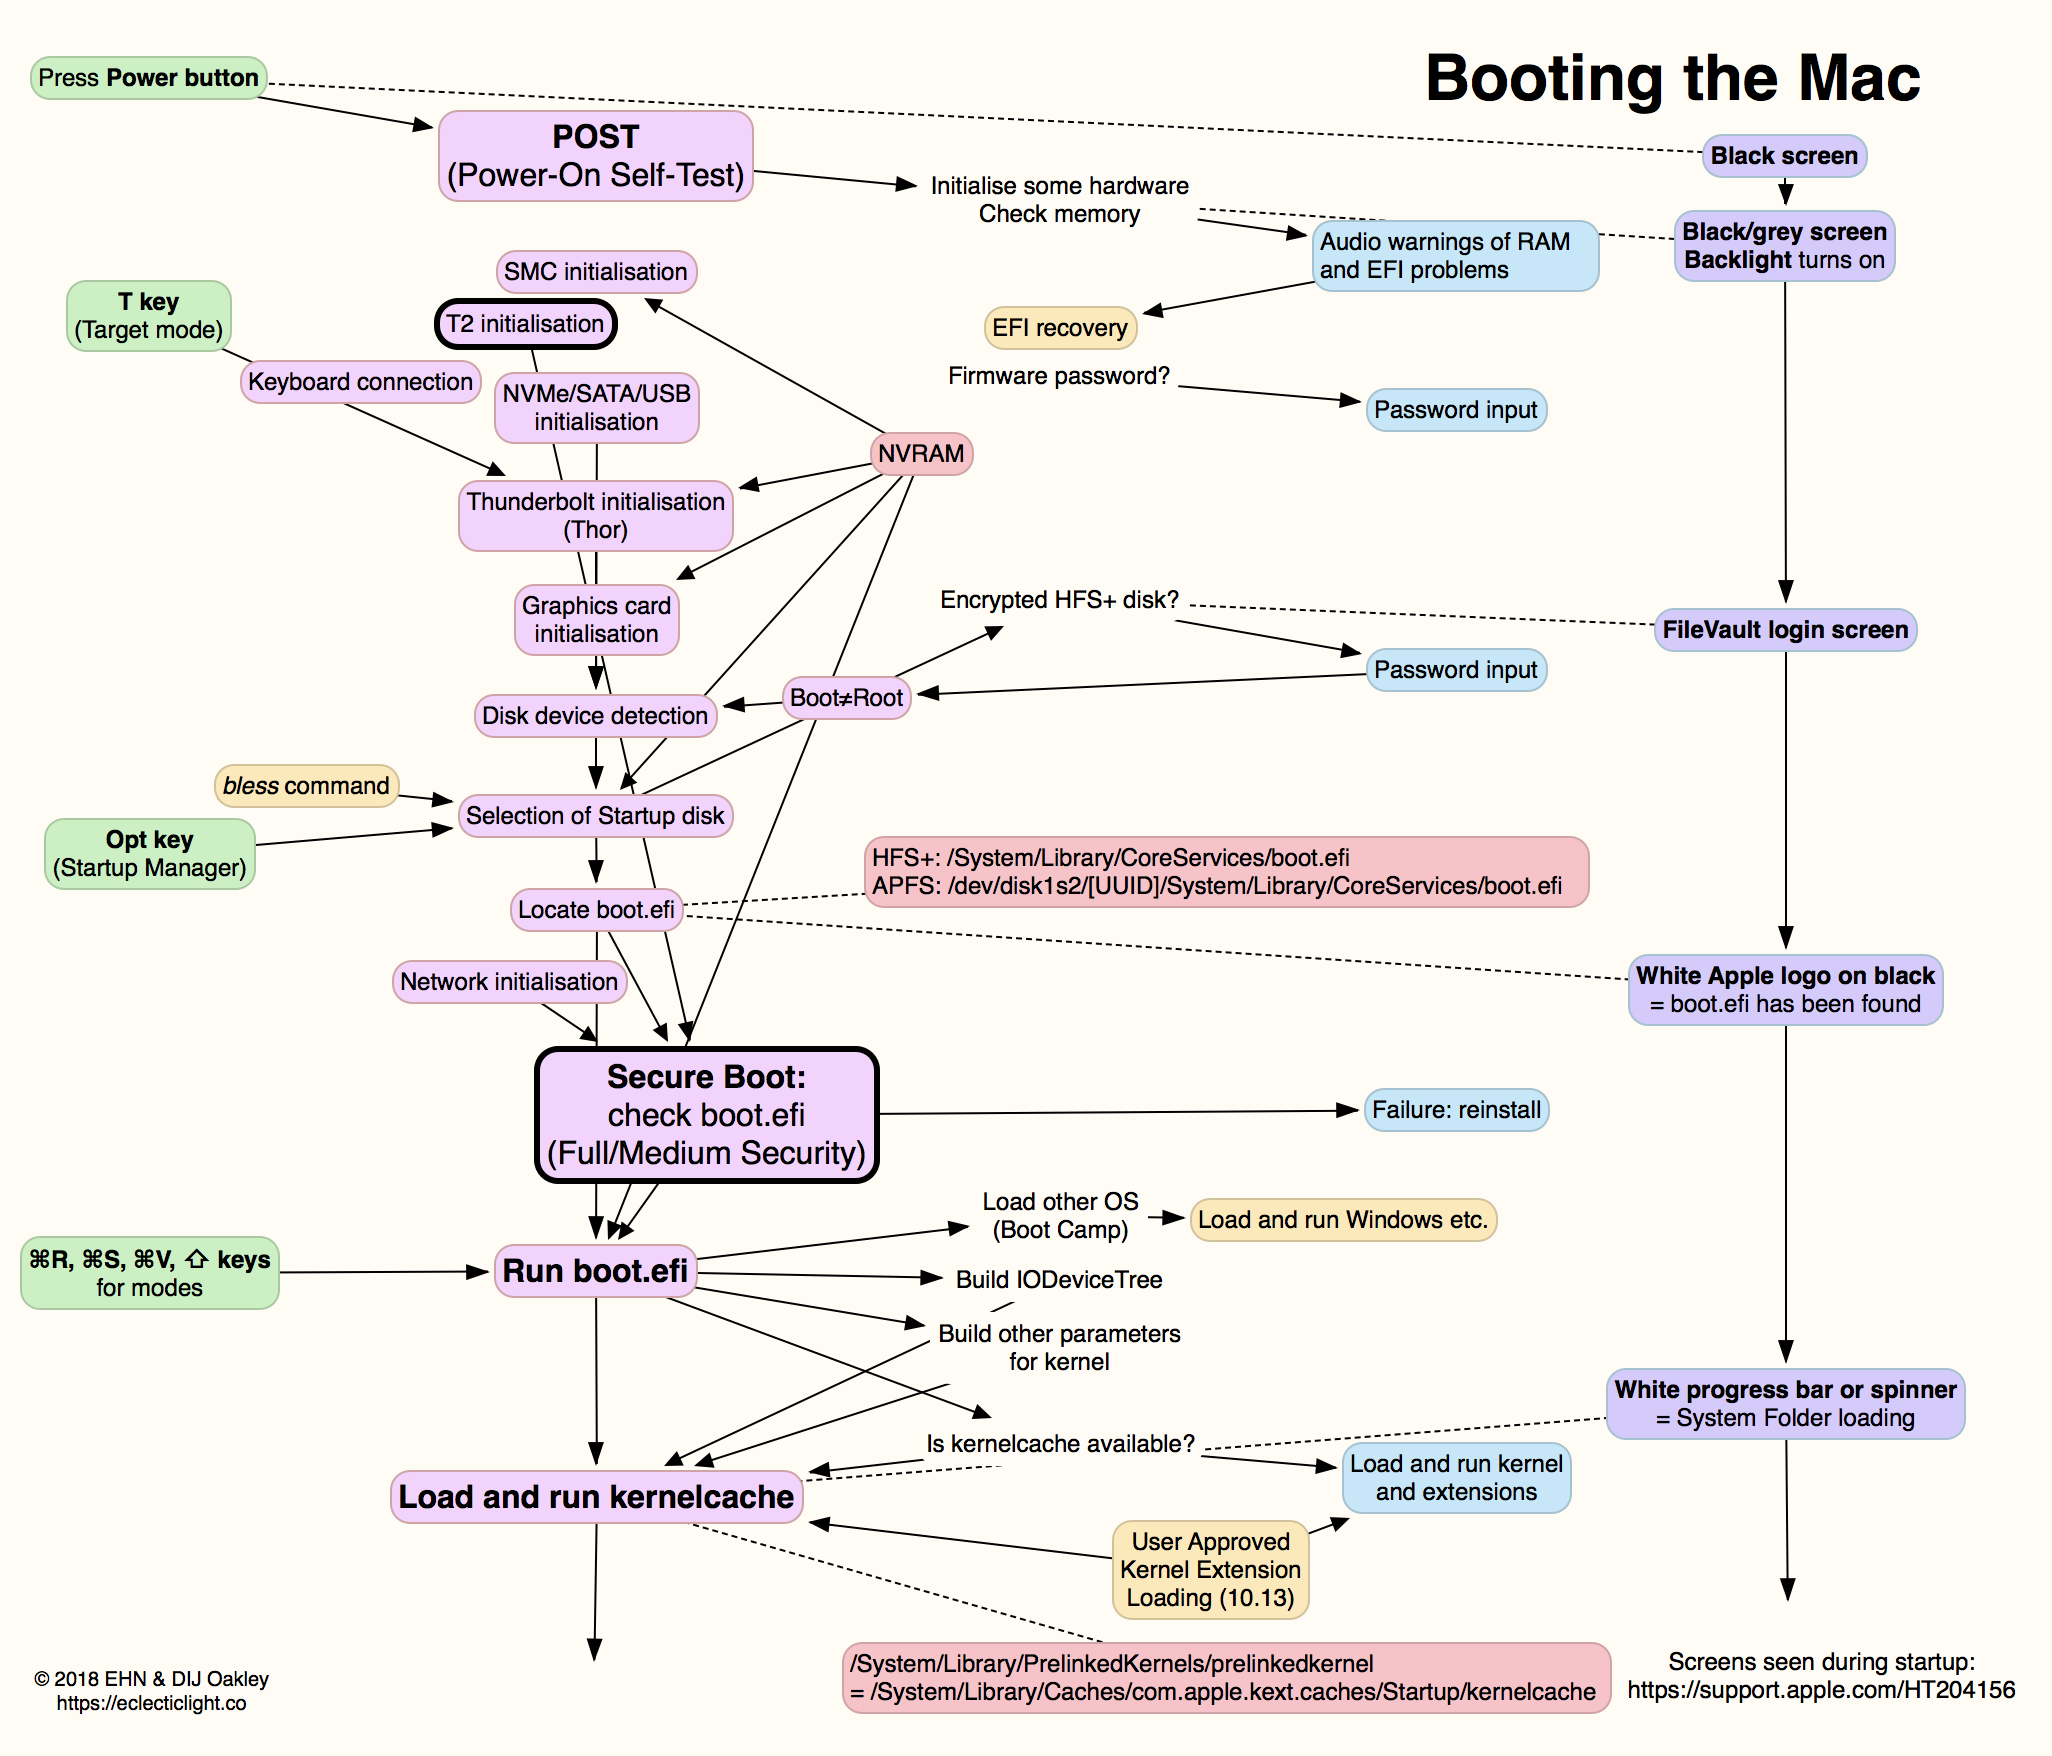 Booting the Mac: Visual Summary – The Eclectic Light Company